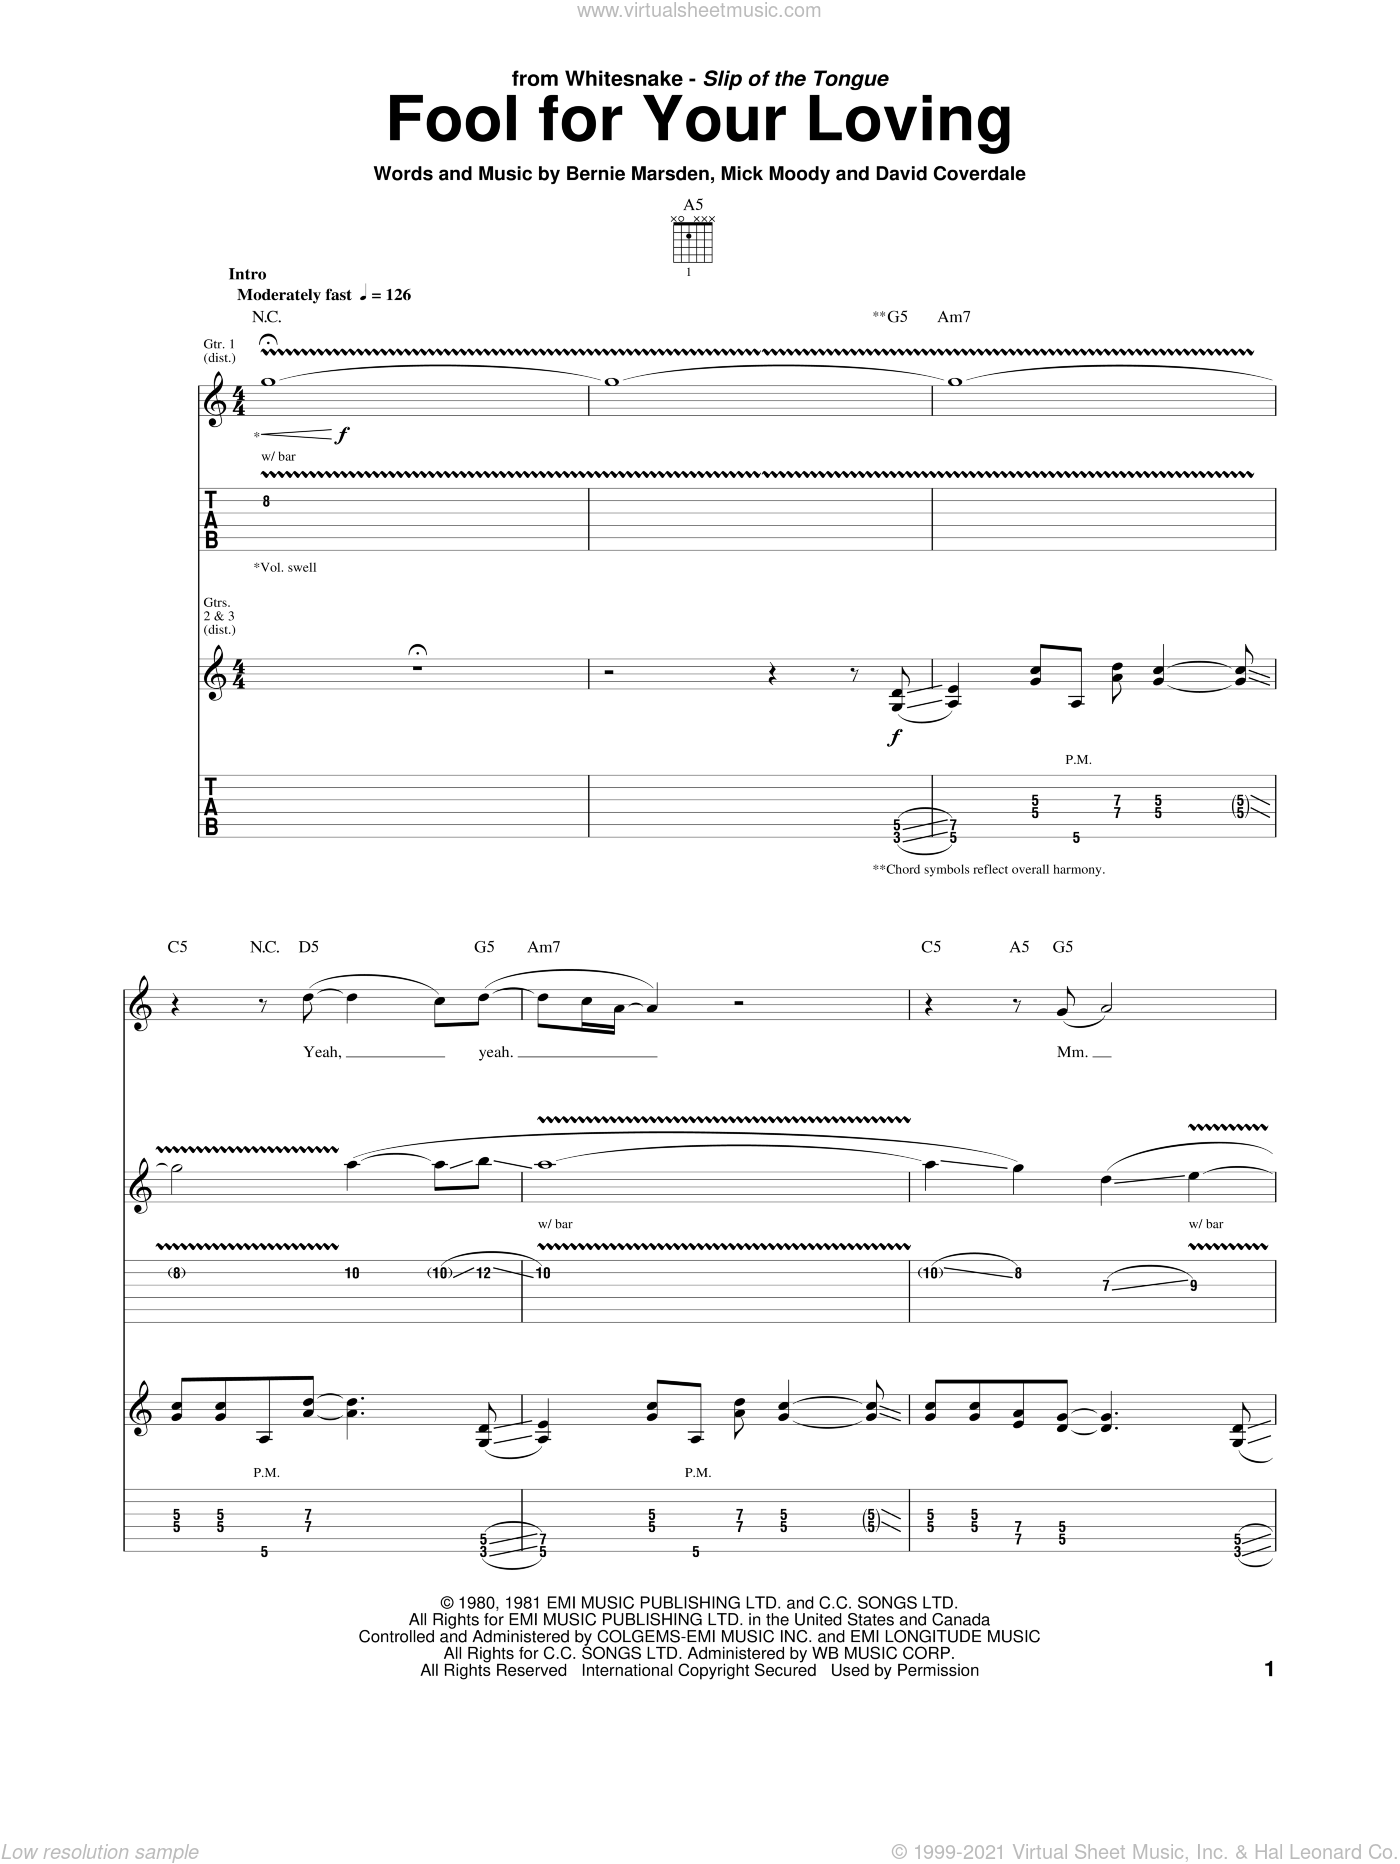 Fool For Your Loving sheet music for guitar (tablature) by Michael Moody